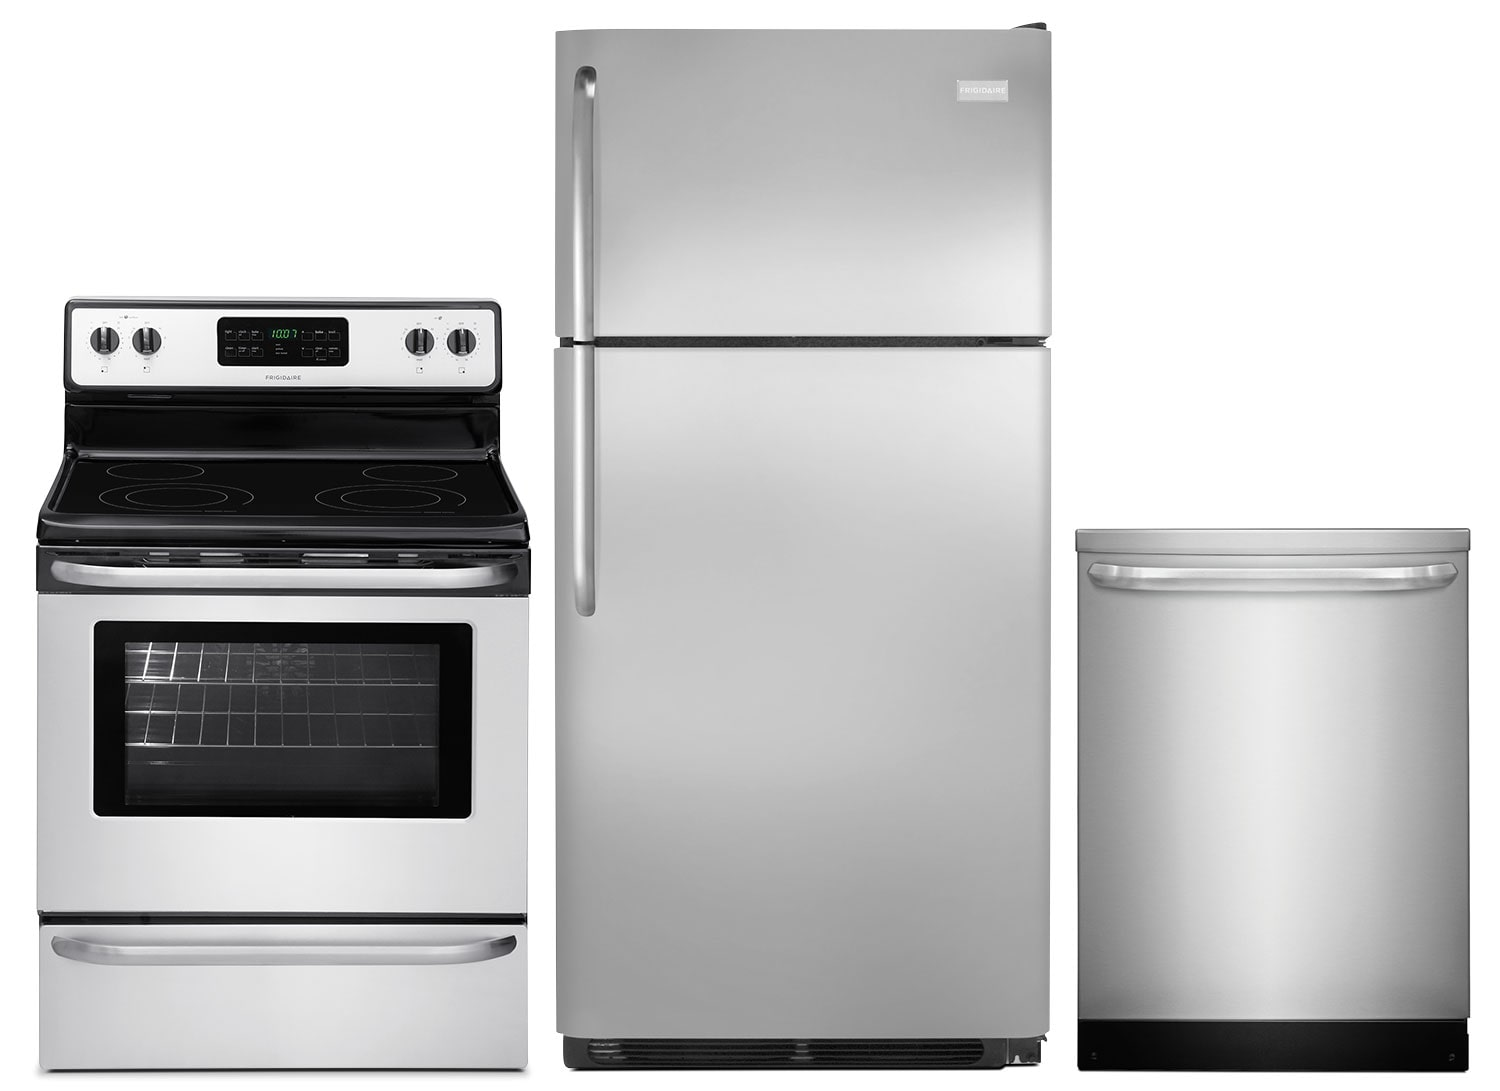 Frigidaire 18 Cu. Ft. Refrigerator, 5.4 Cu. Ft. Electric Range and Built-In Dishwasher